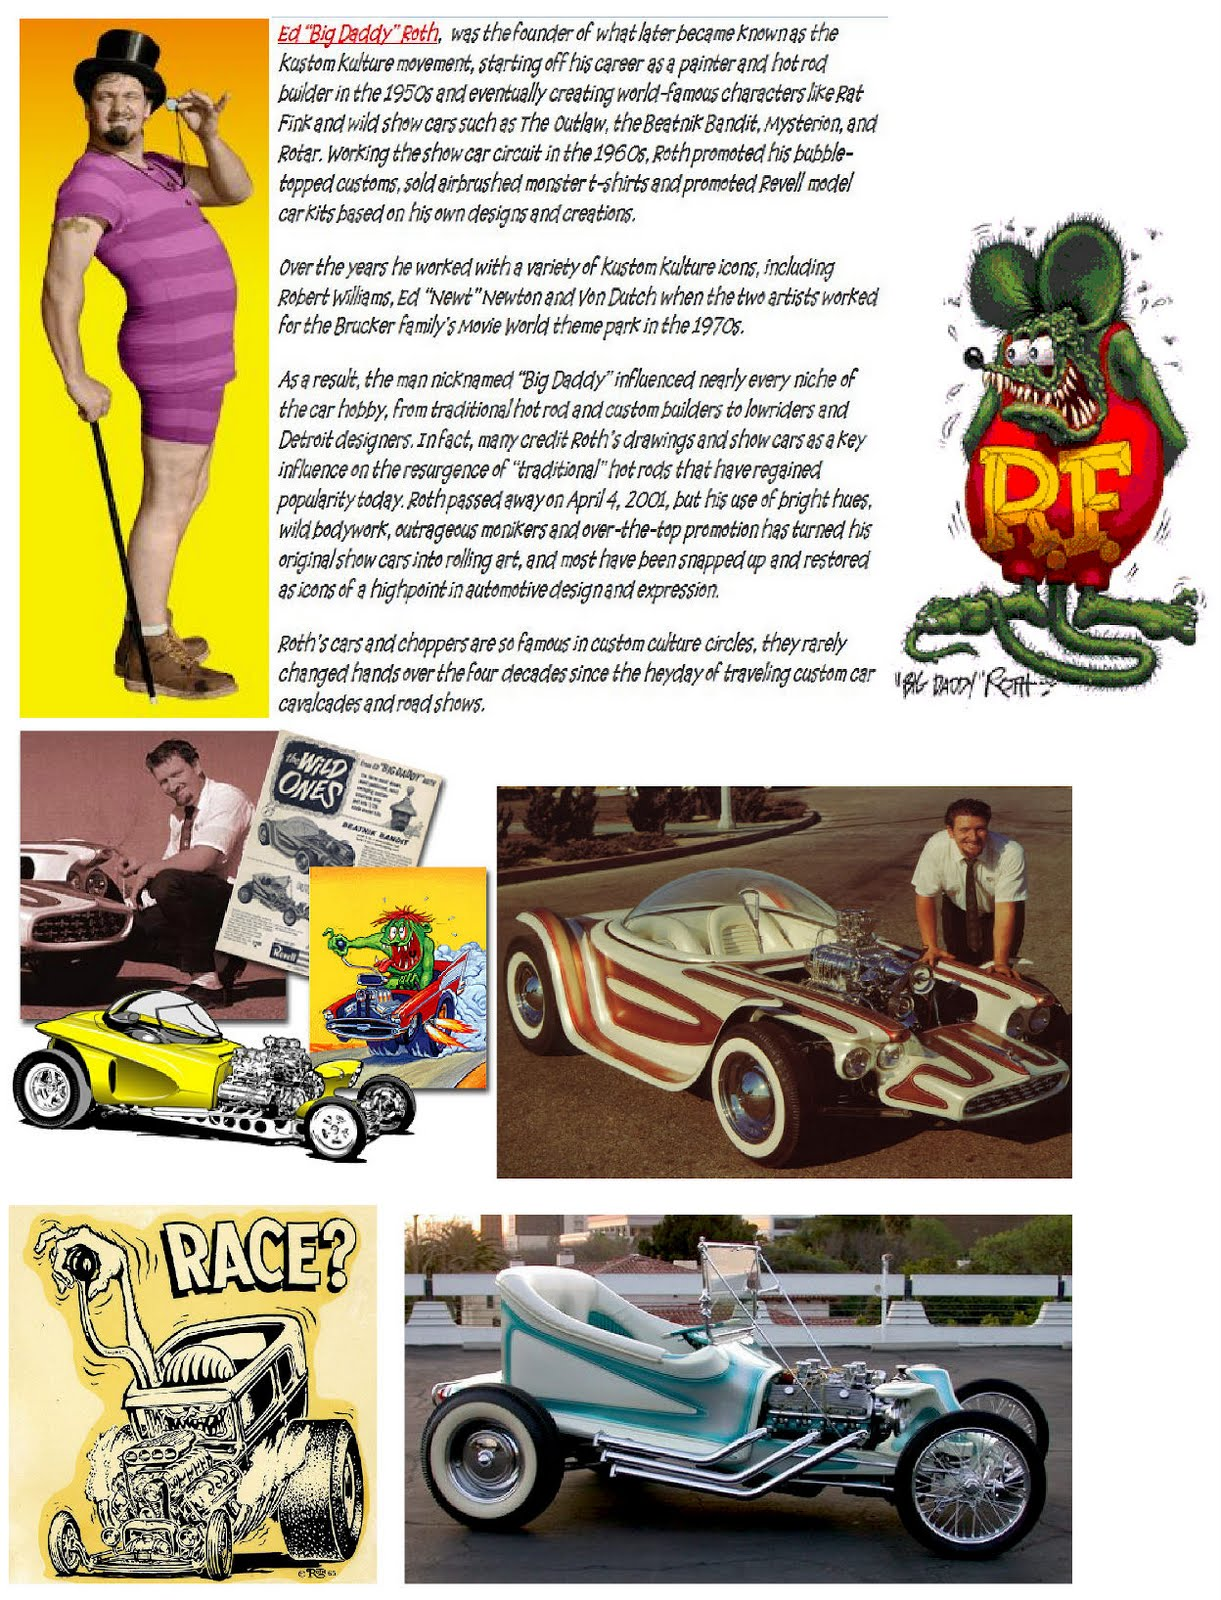 HOT RODS and JALOPIES: Big Daddy Roth   Old Car Ads, and